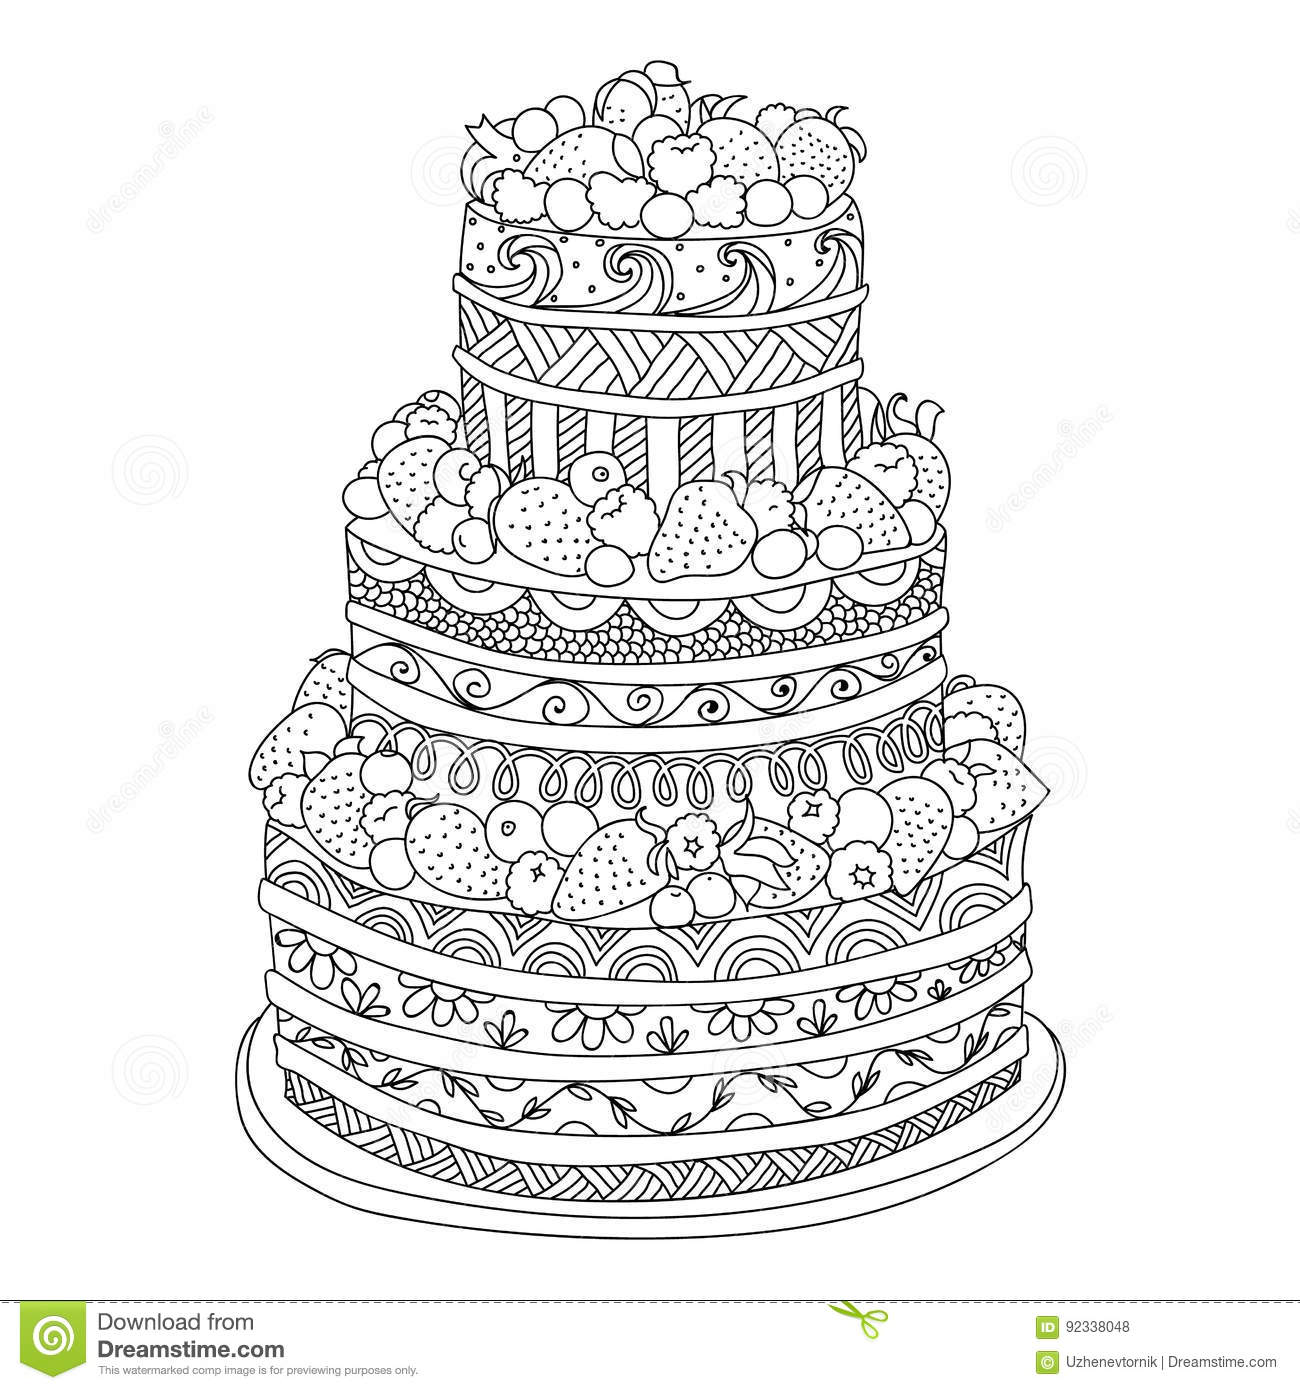 Cake For Coloring Book Stock Vector Illustration Of Decorative